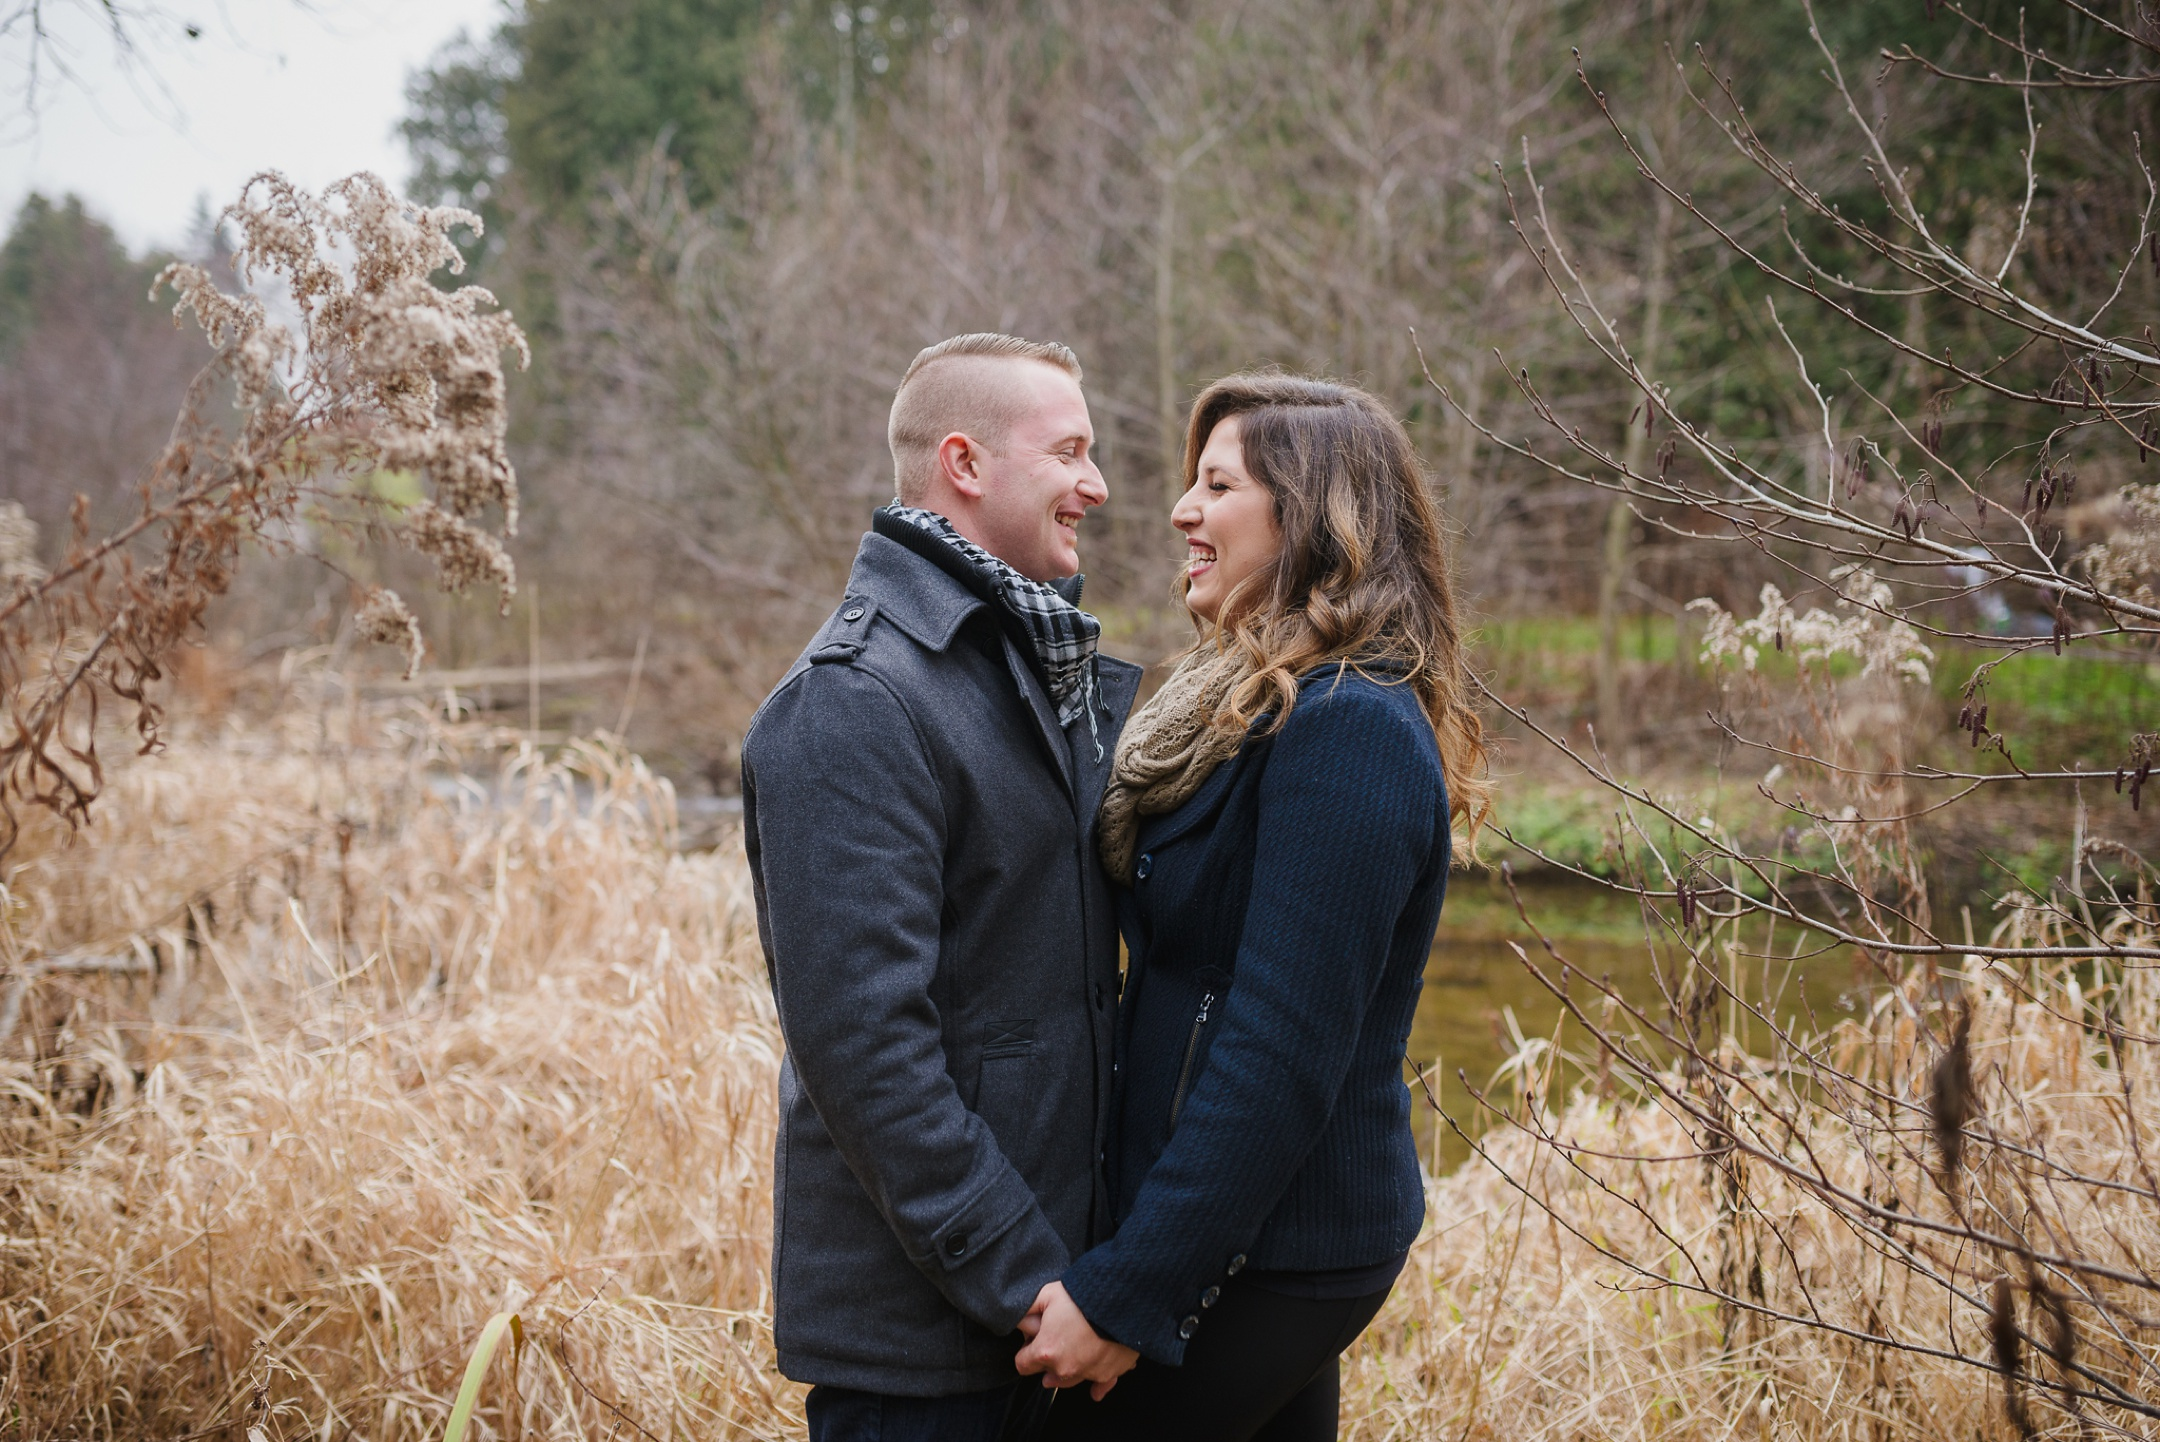 Whitby Fall Engagement Session in the woods